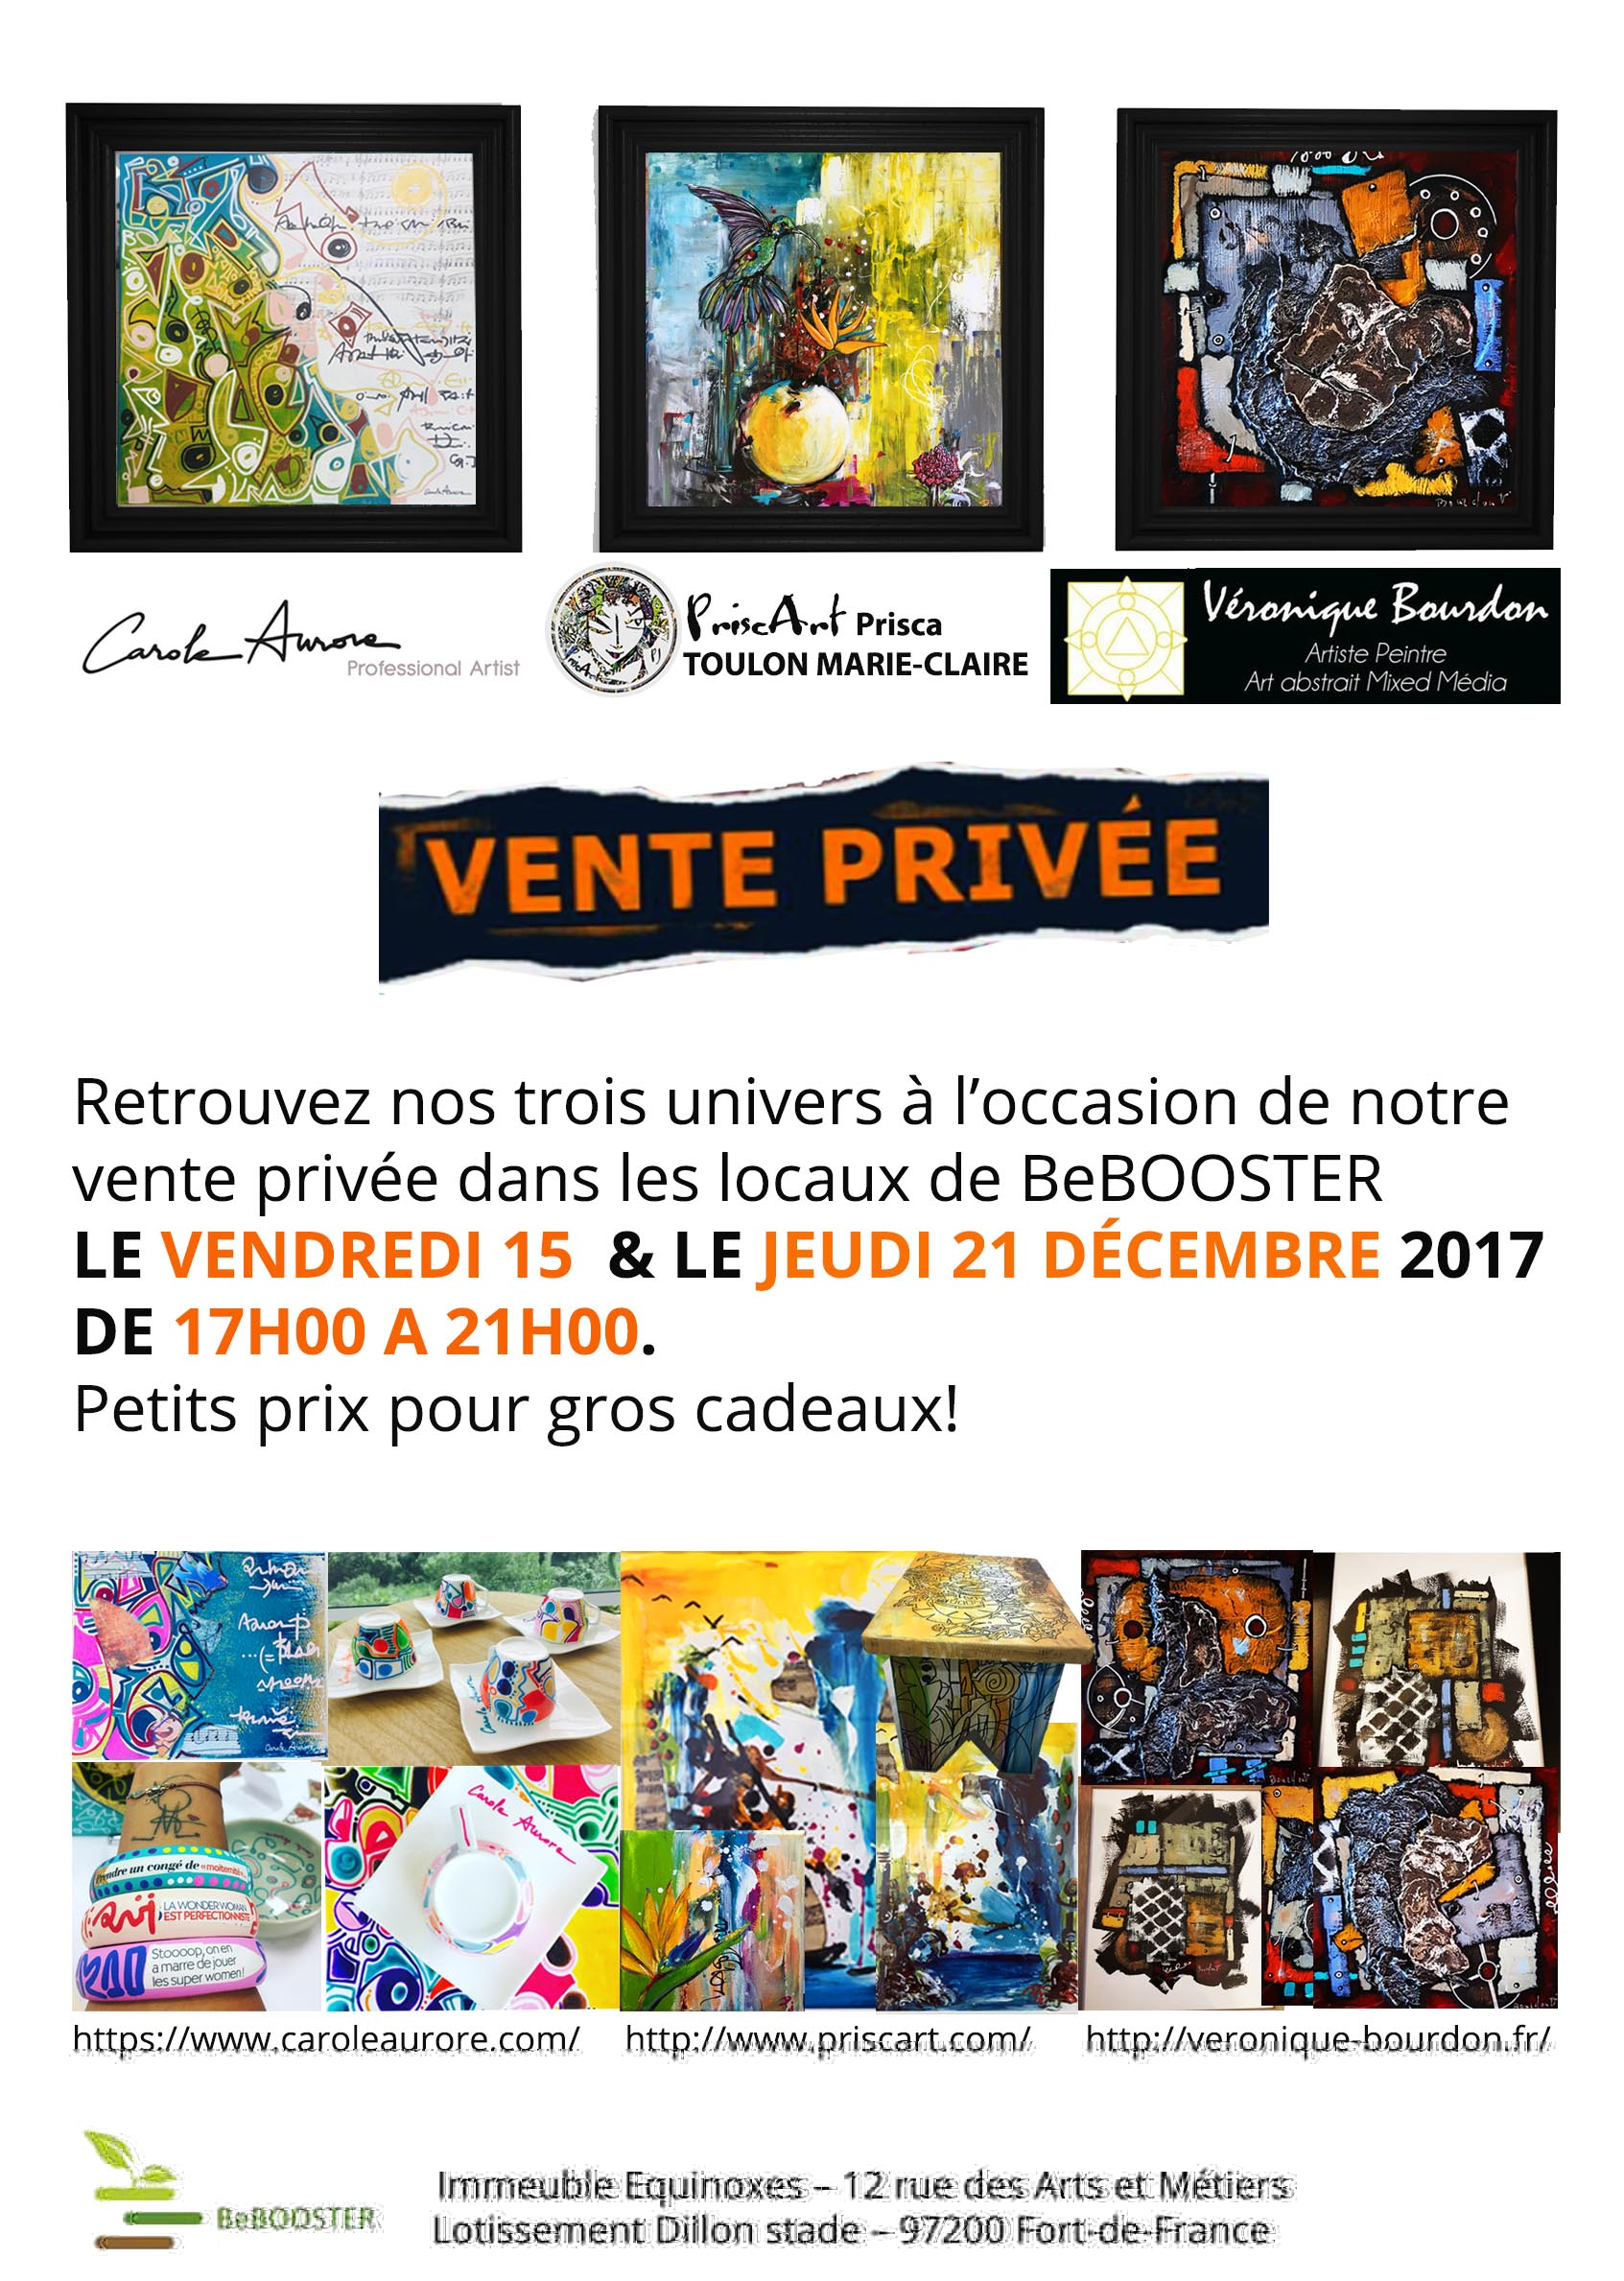 Vente Privee Art Vente Privee 15 Et 21 12 2017